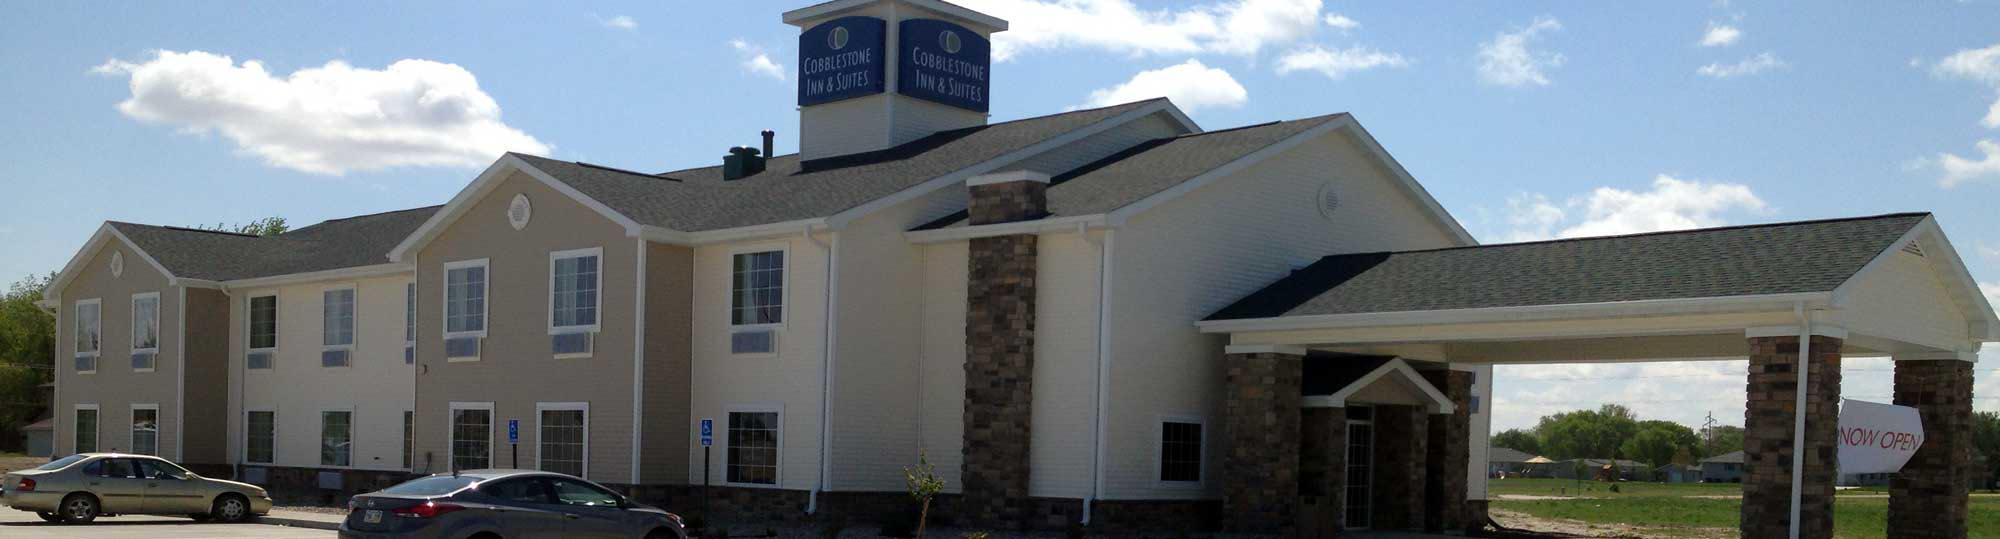 Cobblestone Inn and Suites Schuyler